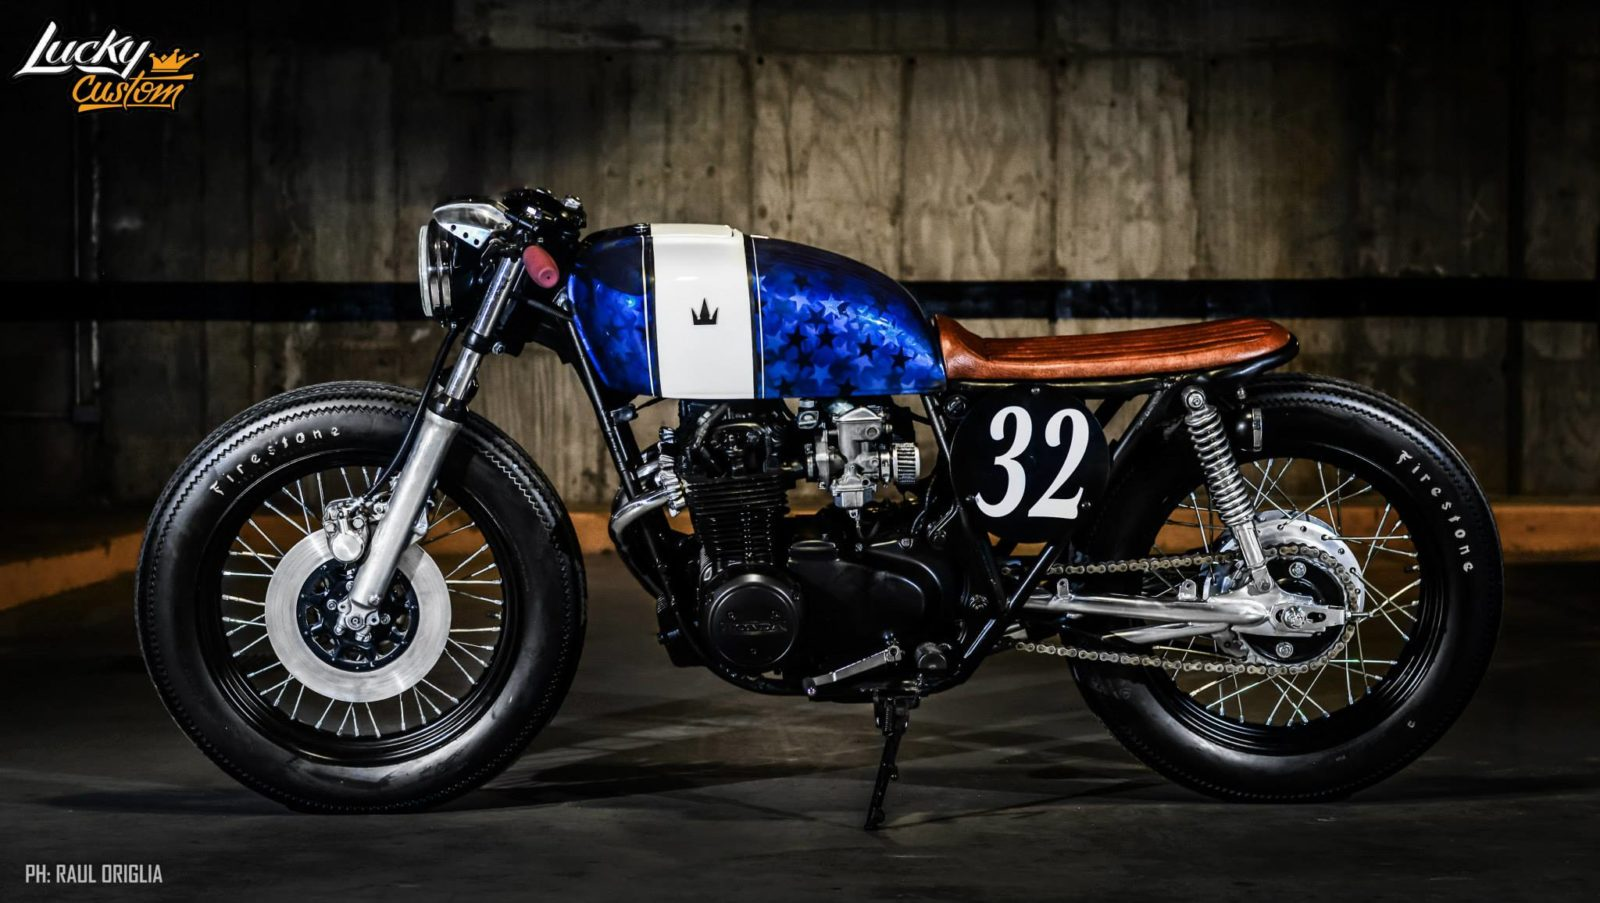 Cb550 Caf 233 Racer By Lucky Custom Bikebrewers Com